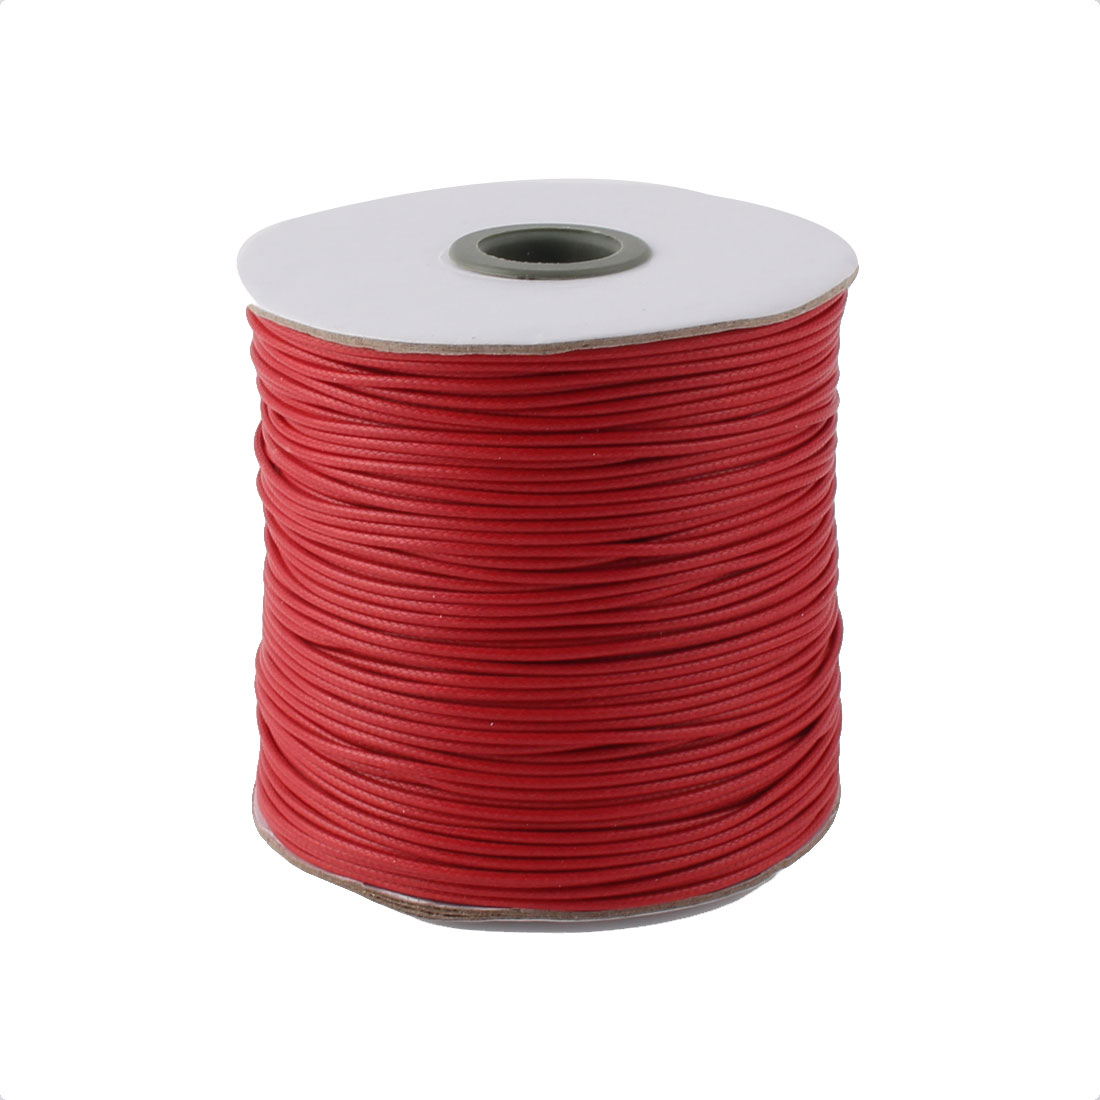 Cotton Waxed Making String Beading Thread Cord Roll Red 190 Yard for Beads Jewelry